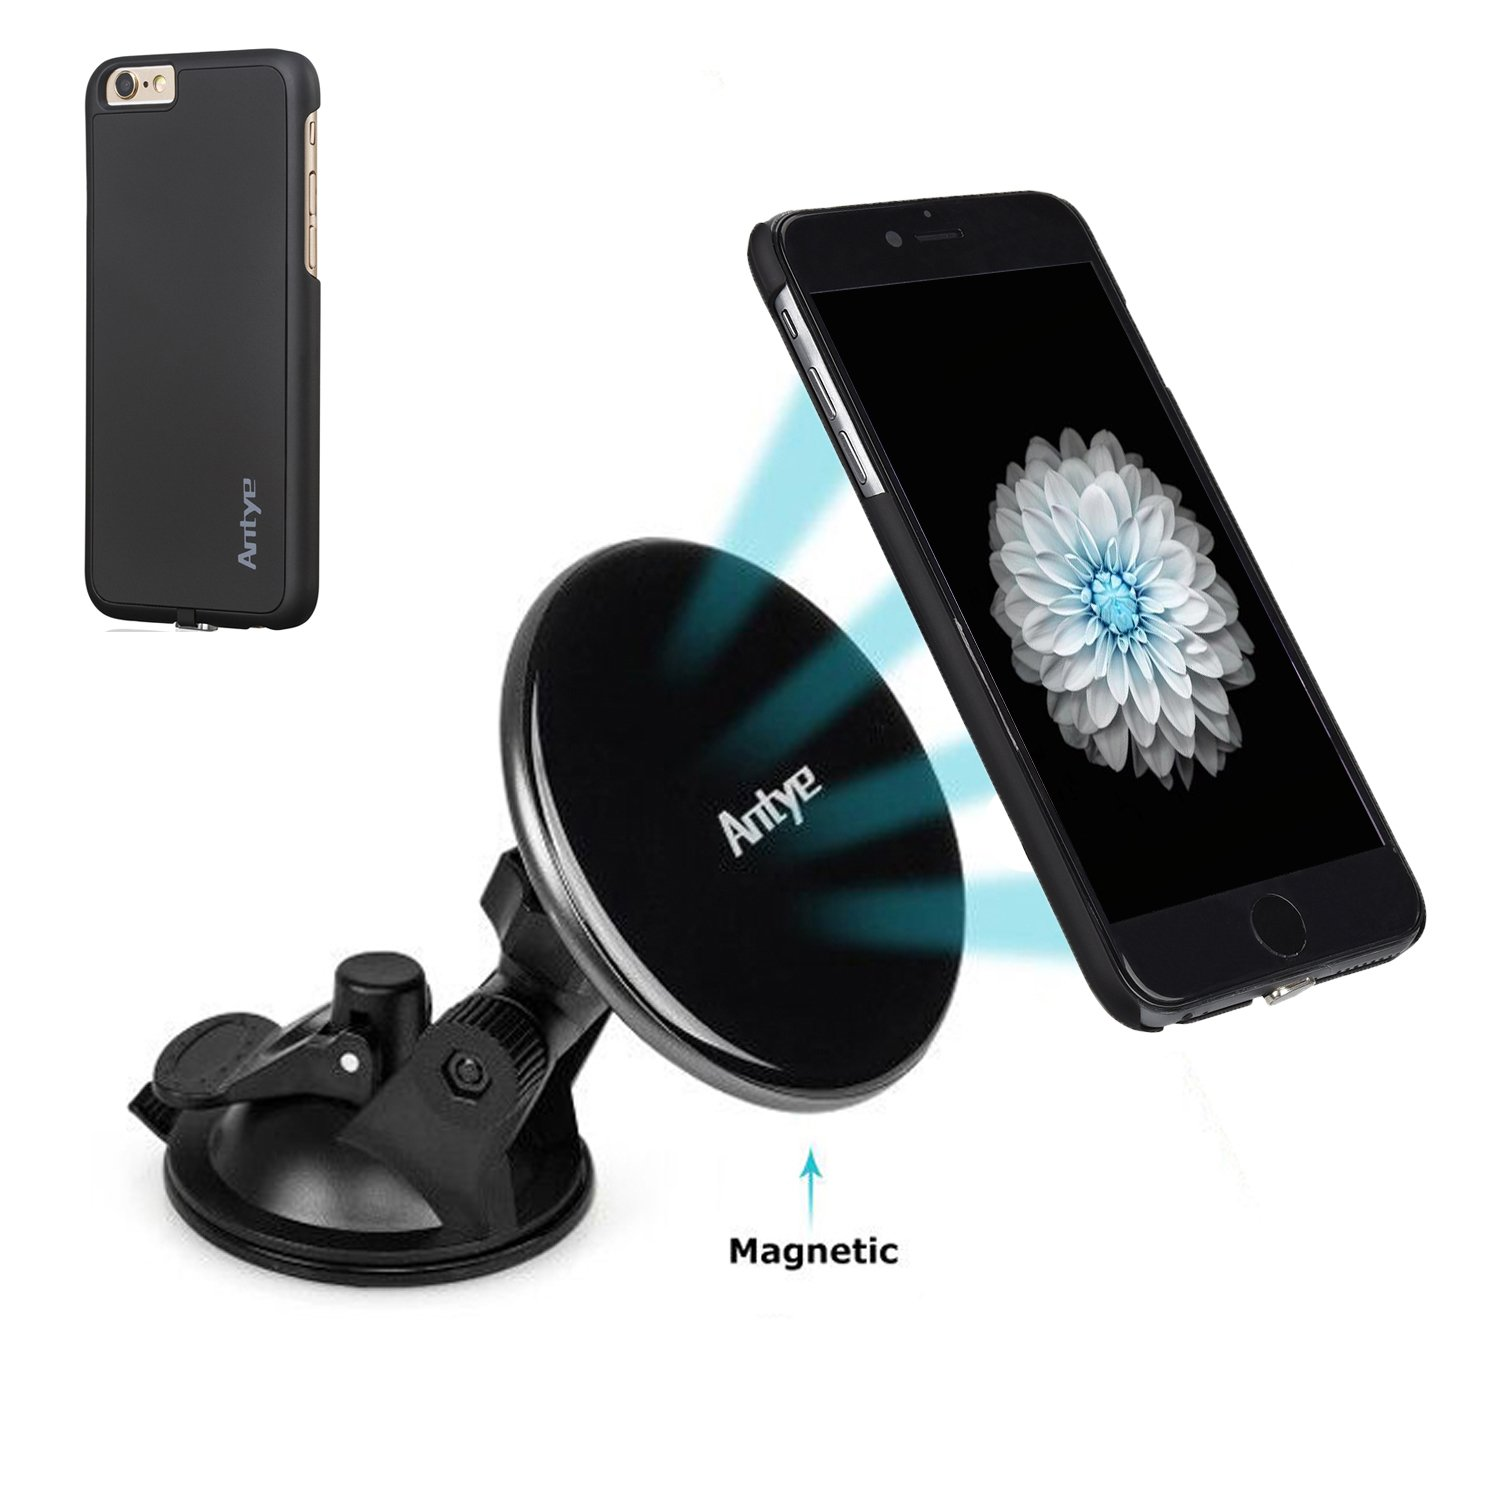 Antye Magnetic Qi Wireless Charger Car Mount for iPhone 6 Plus/6S Plus, [2-in-1] Qi Wireless Charging Dock Cradle Suction Holder & Wireless Charging Receiver Case for iPhone 6 Plus/6S Plus, Black by ANTYE